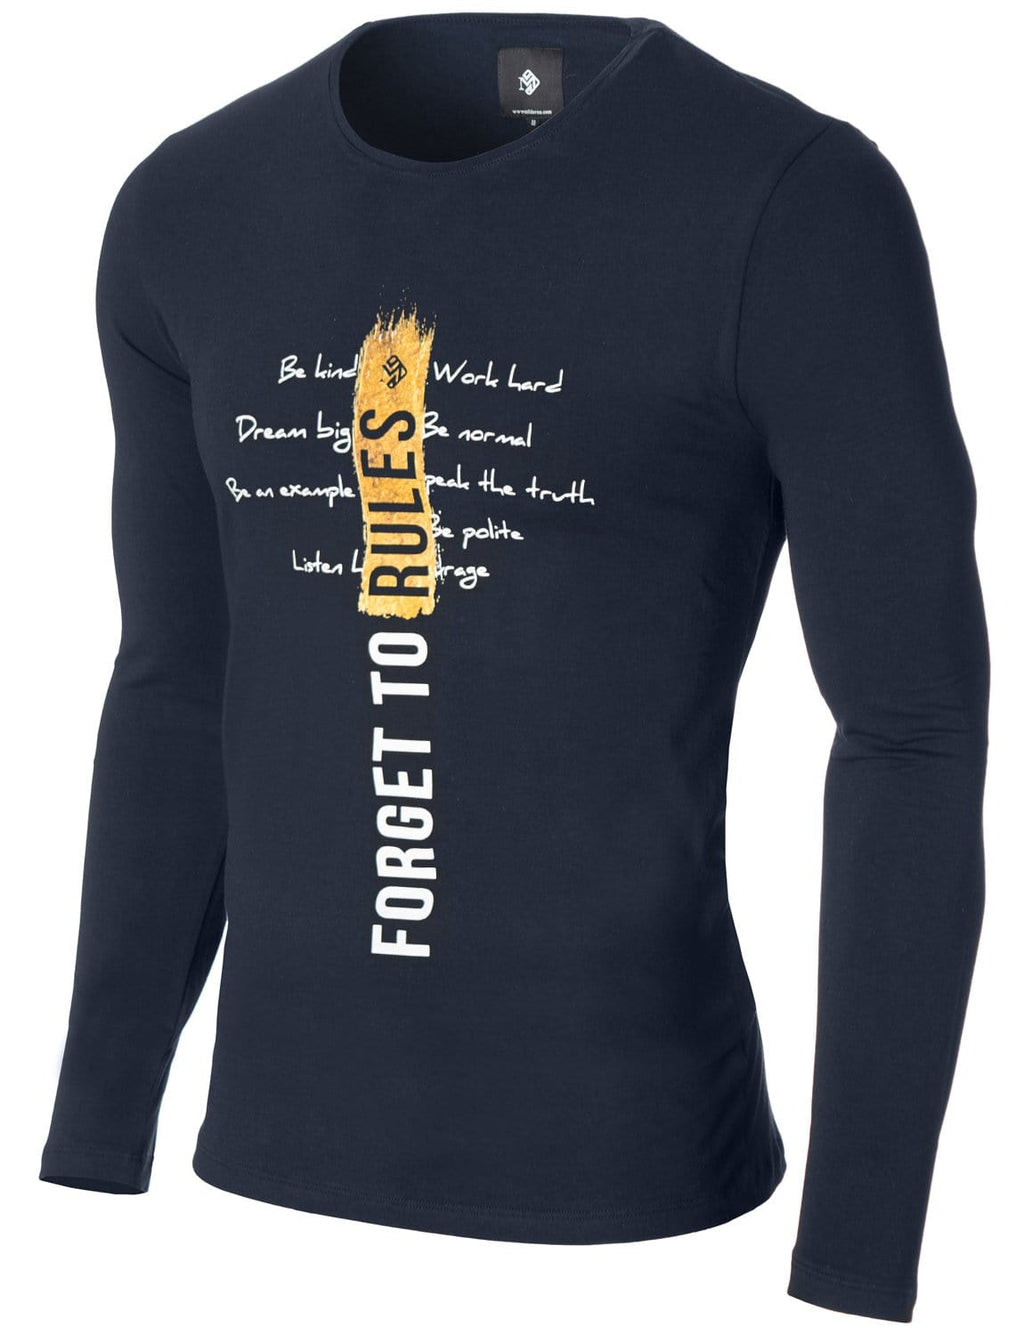 Mens Printed Long Sleeve Slogan T-shirt Navy (MOD1003LS)